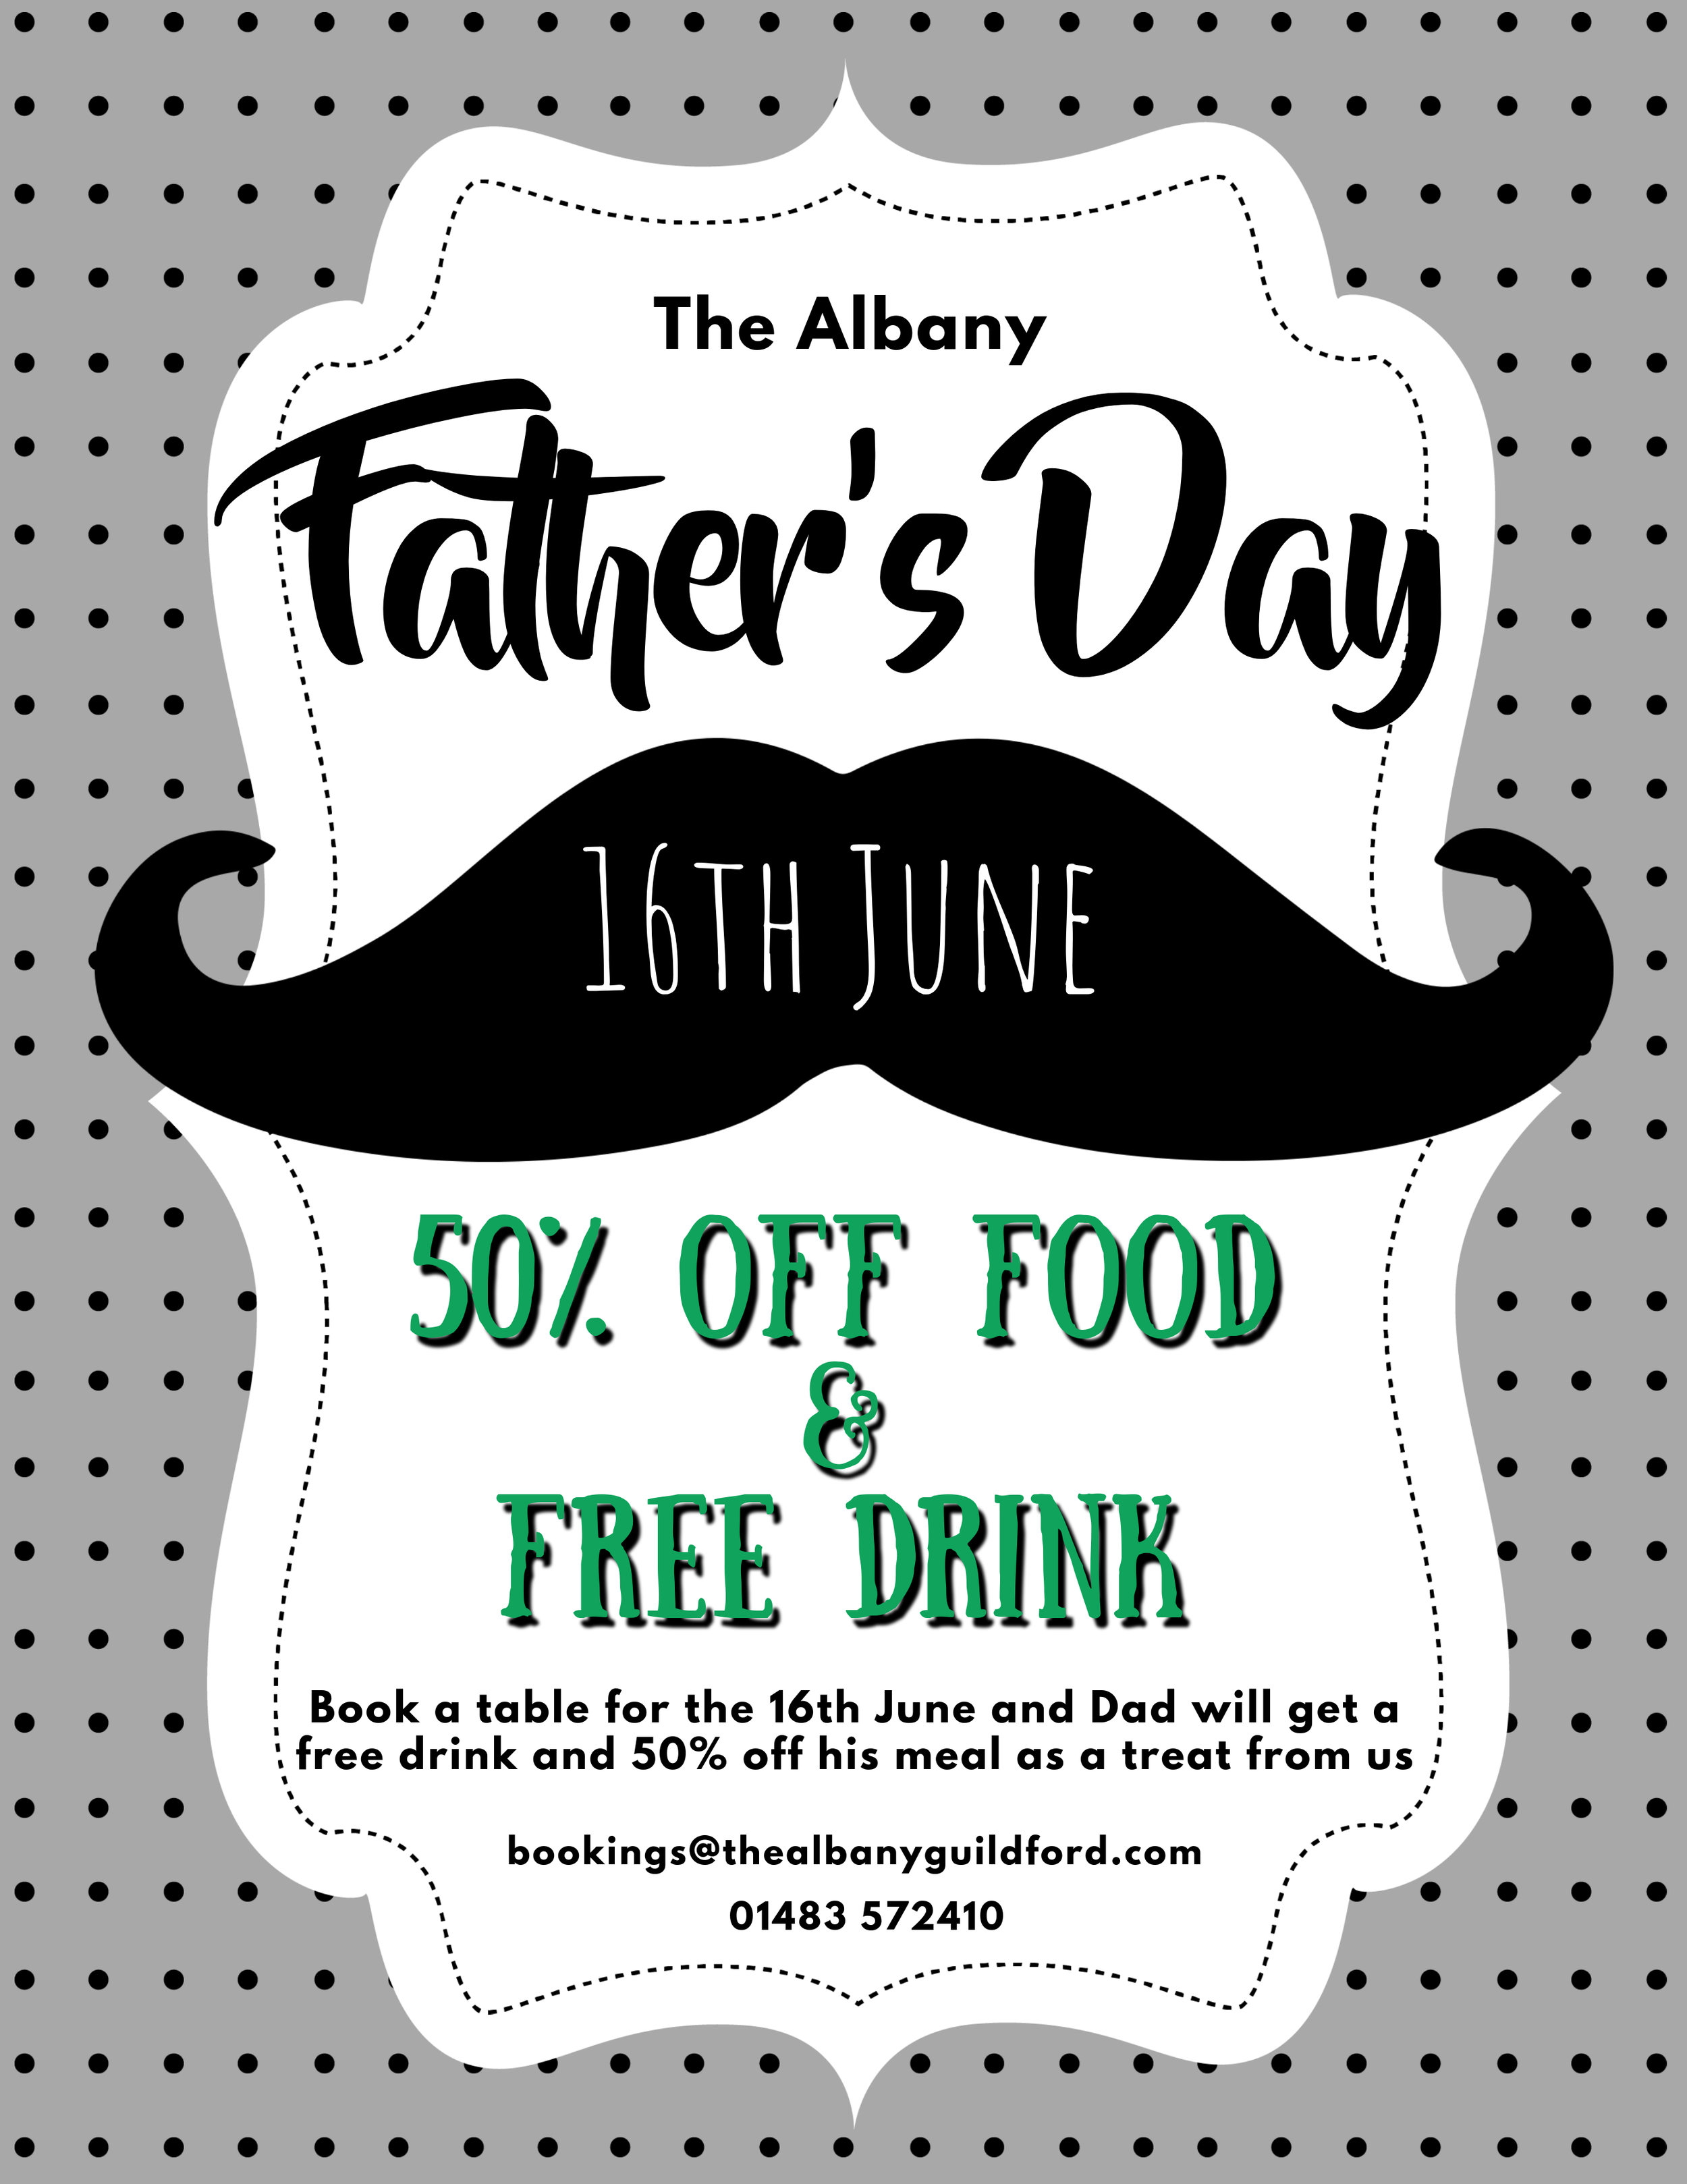 Father's day - Book a table for the 16th June and Dad will get a free drink and 50% off his meal as a treat from us